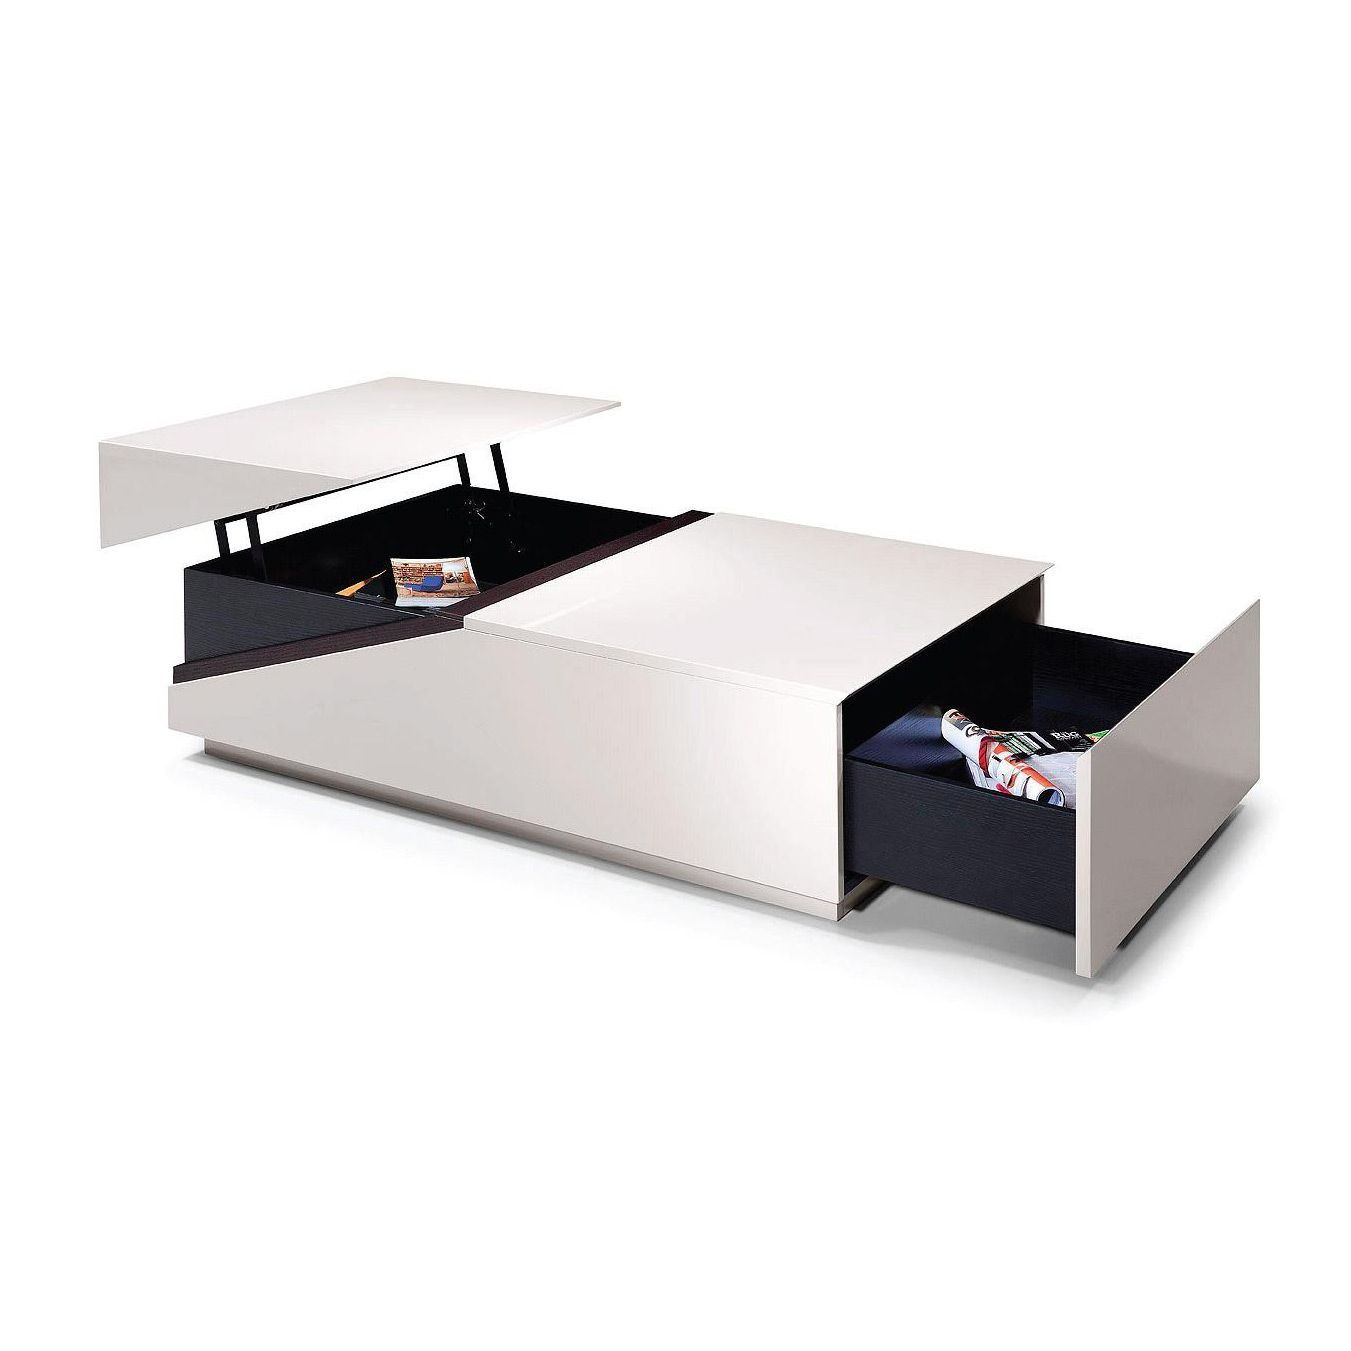 Weu0027re Over The Moon For This Clever Coffee Table. Its Sleek, Futuristic